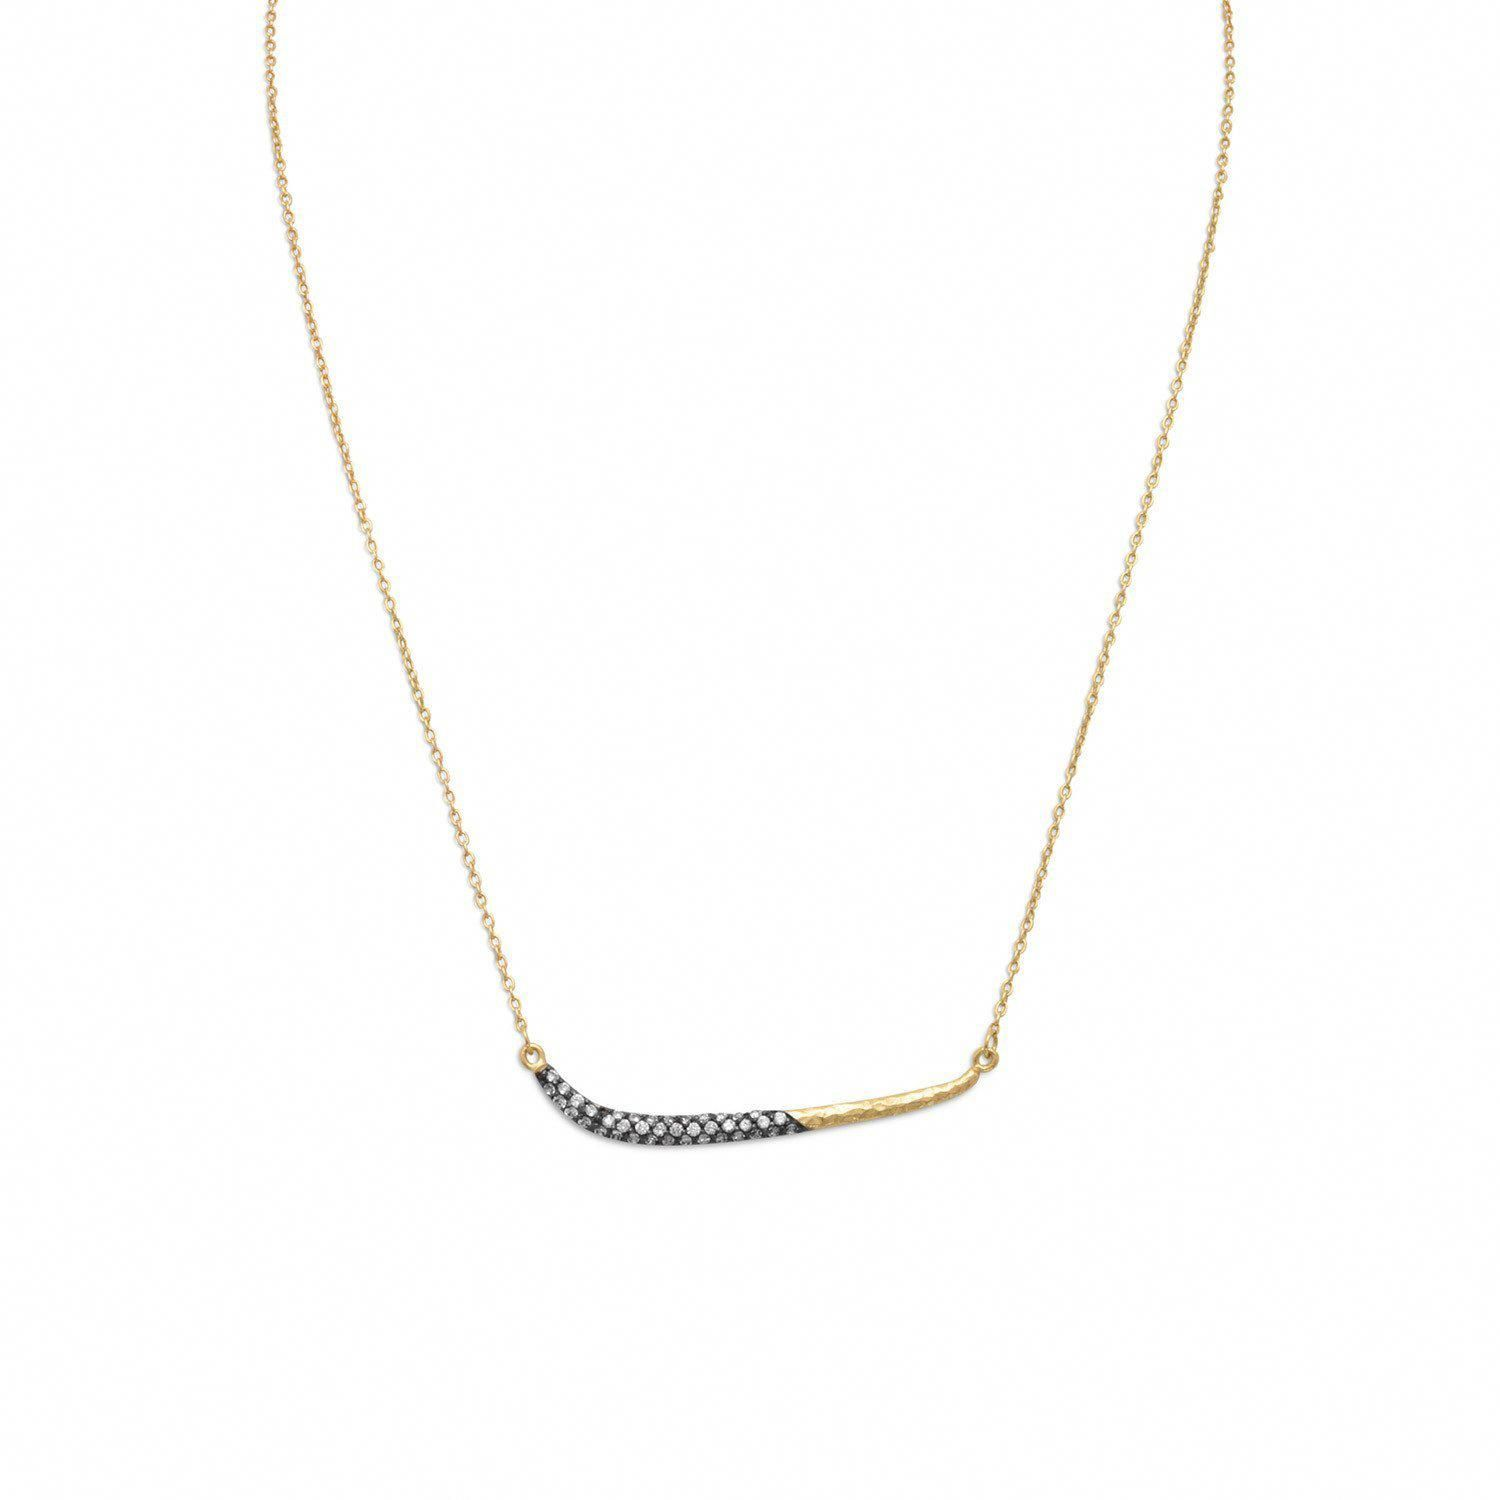 17 1 14 Karat Gold Plated Necklace With Oxidized Cz Bar Finegoldnecklaces